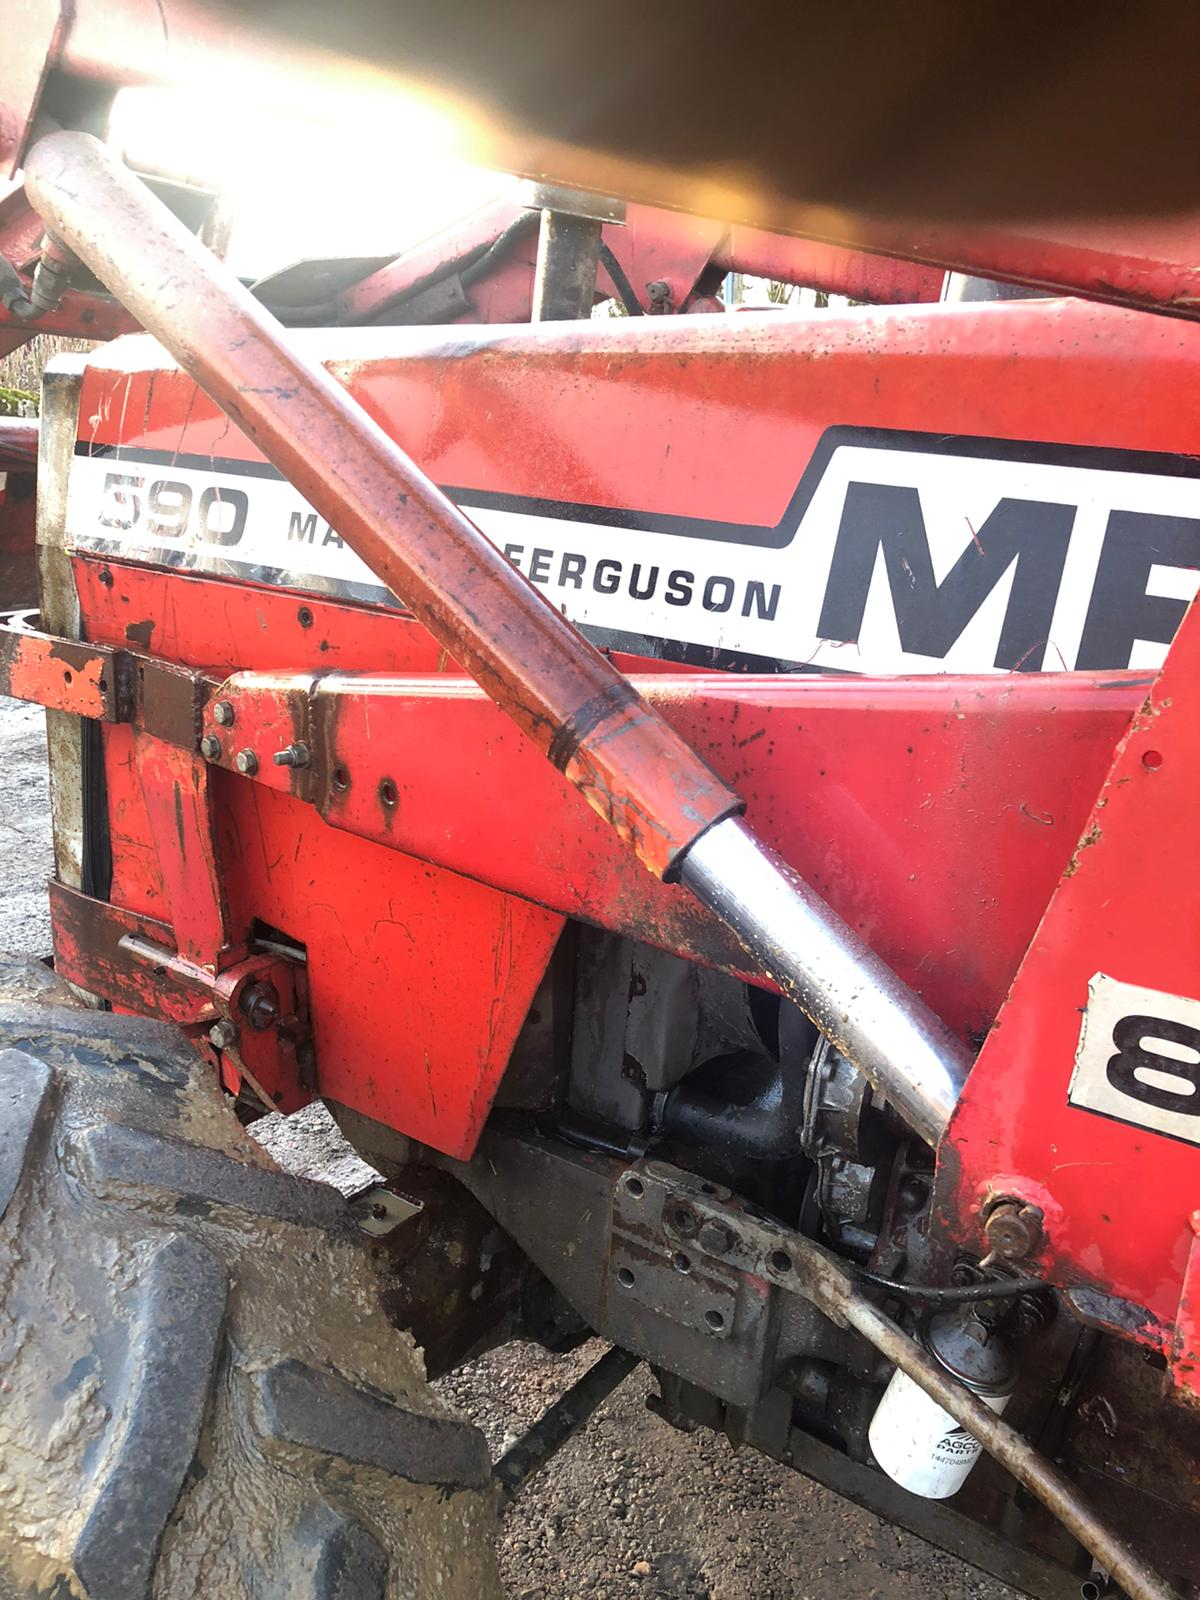 Lot 22 - MASSEY FERGUSON 590 TRACTOR, 4 WHEEL DRIVE, ROAD REGISTERED, RUNS, WORKS LIFTS *PLUS VAT*